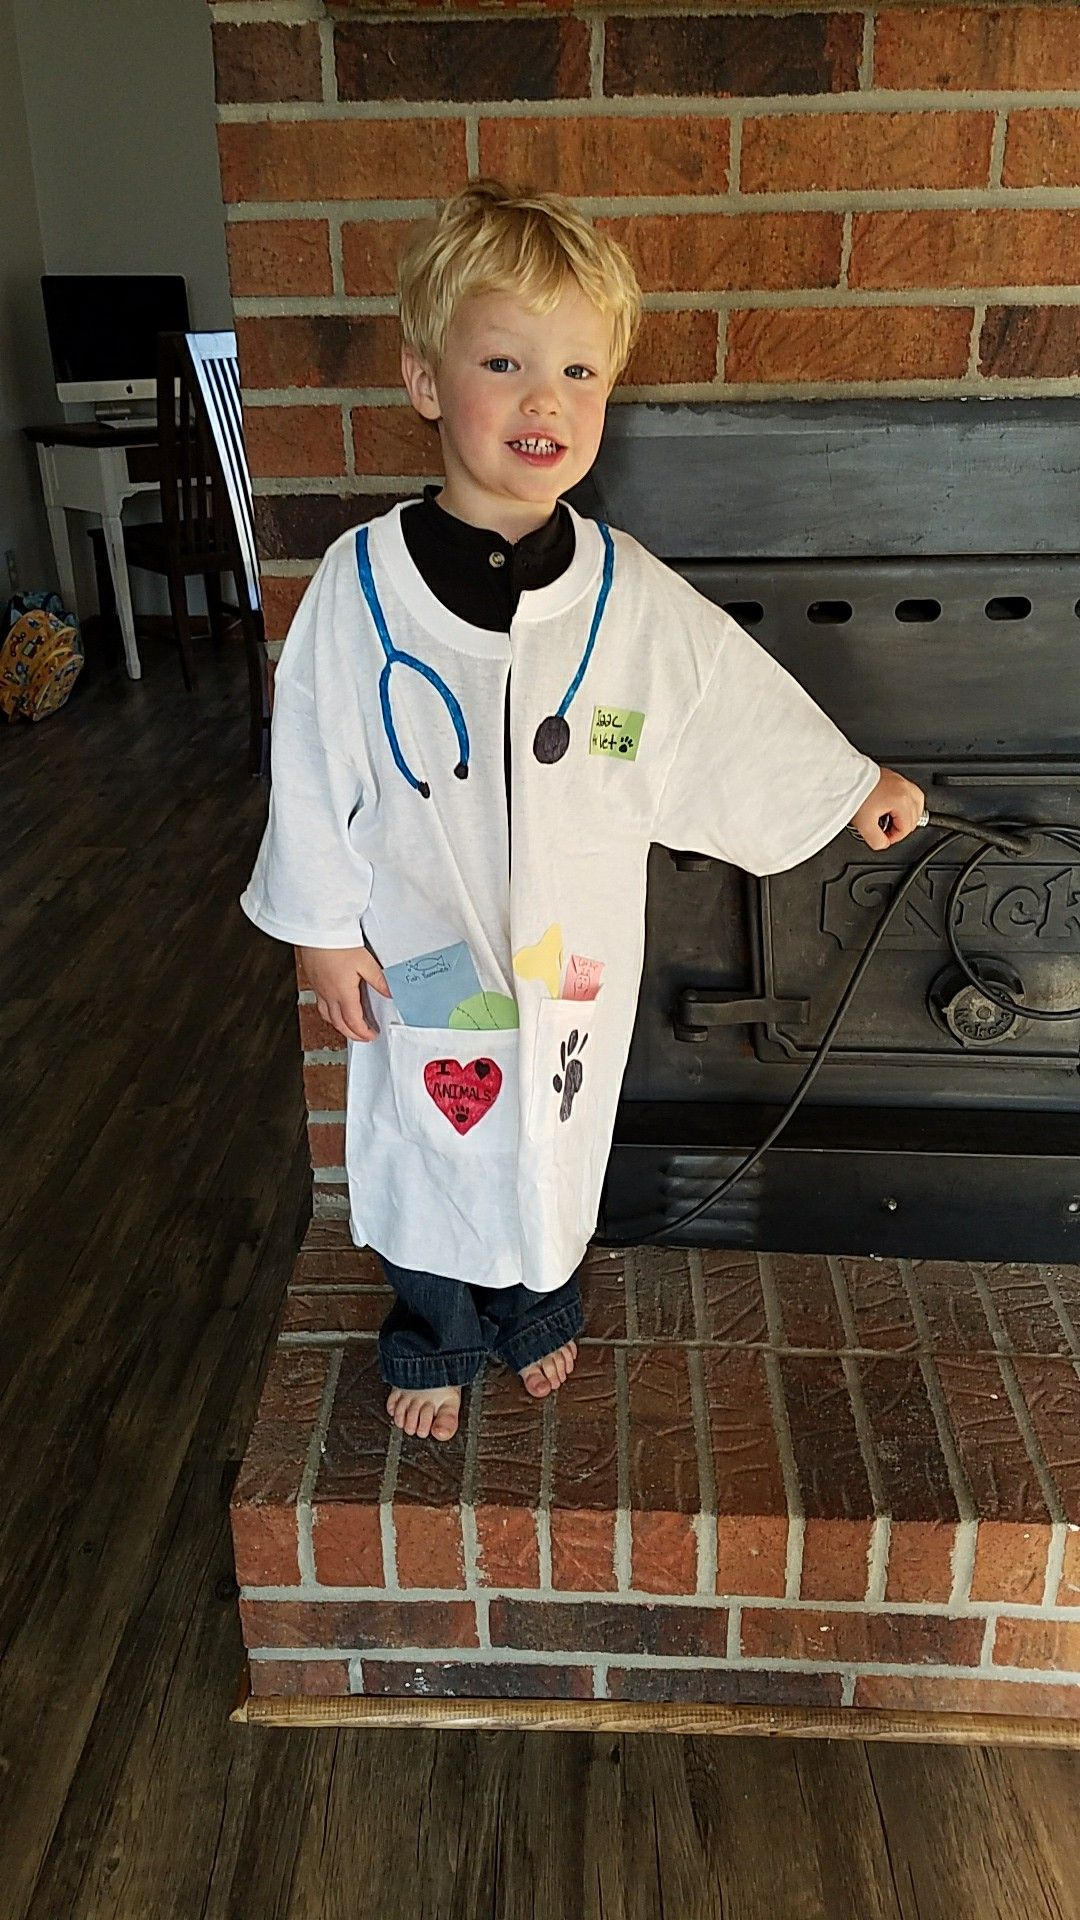 veterinar kid DIY kid's veterinarian costume for career day at school. Made from a t-shirt